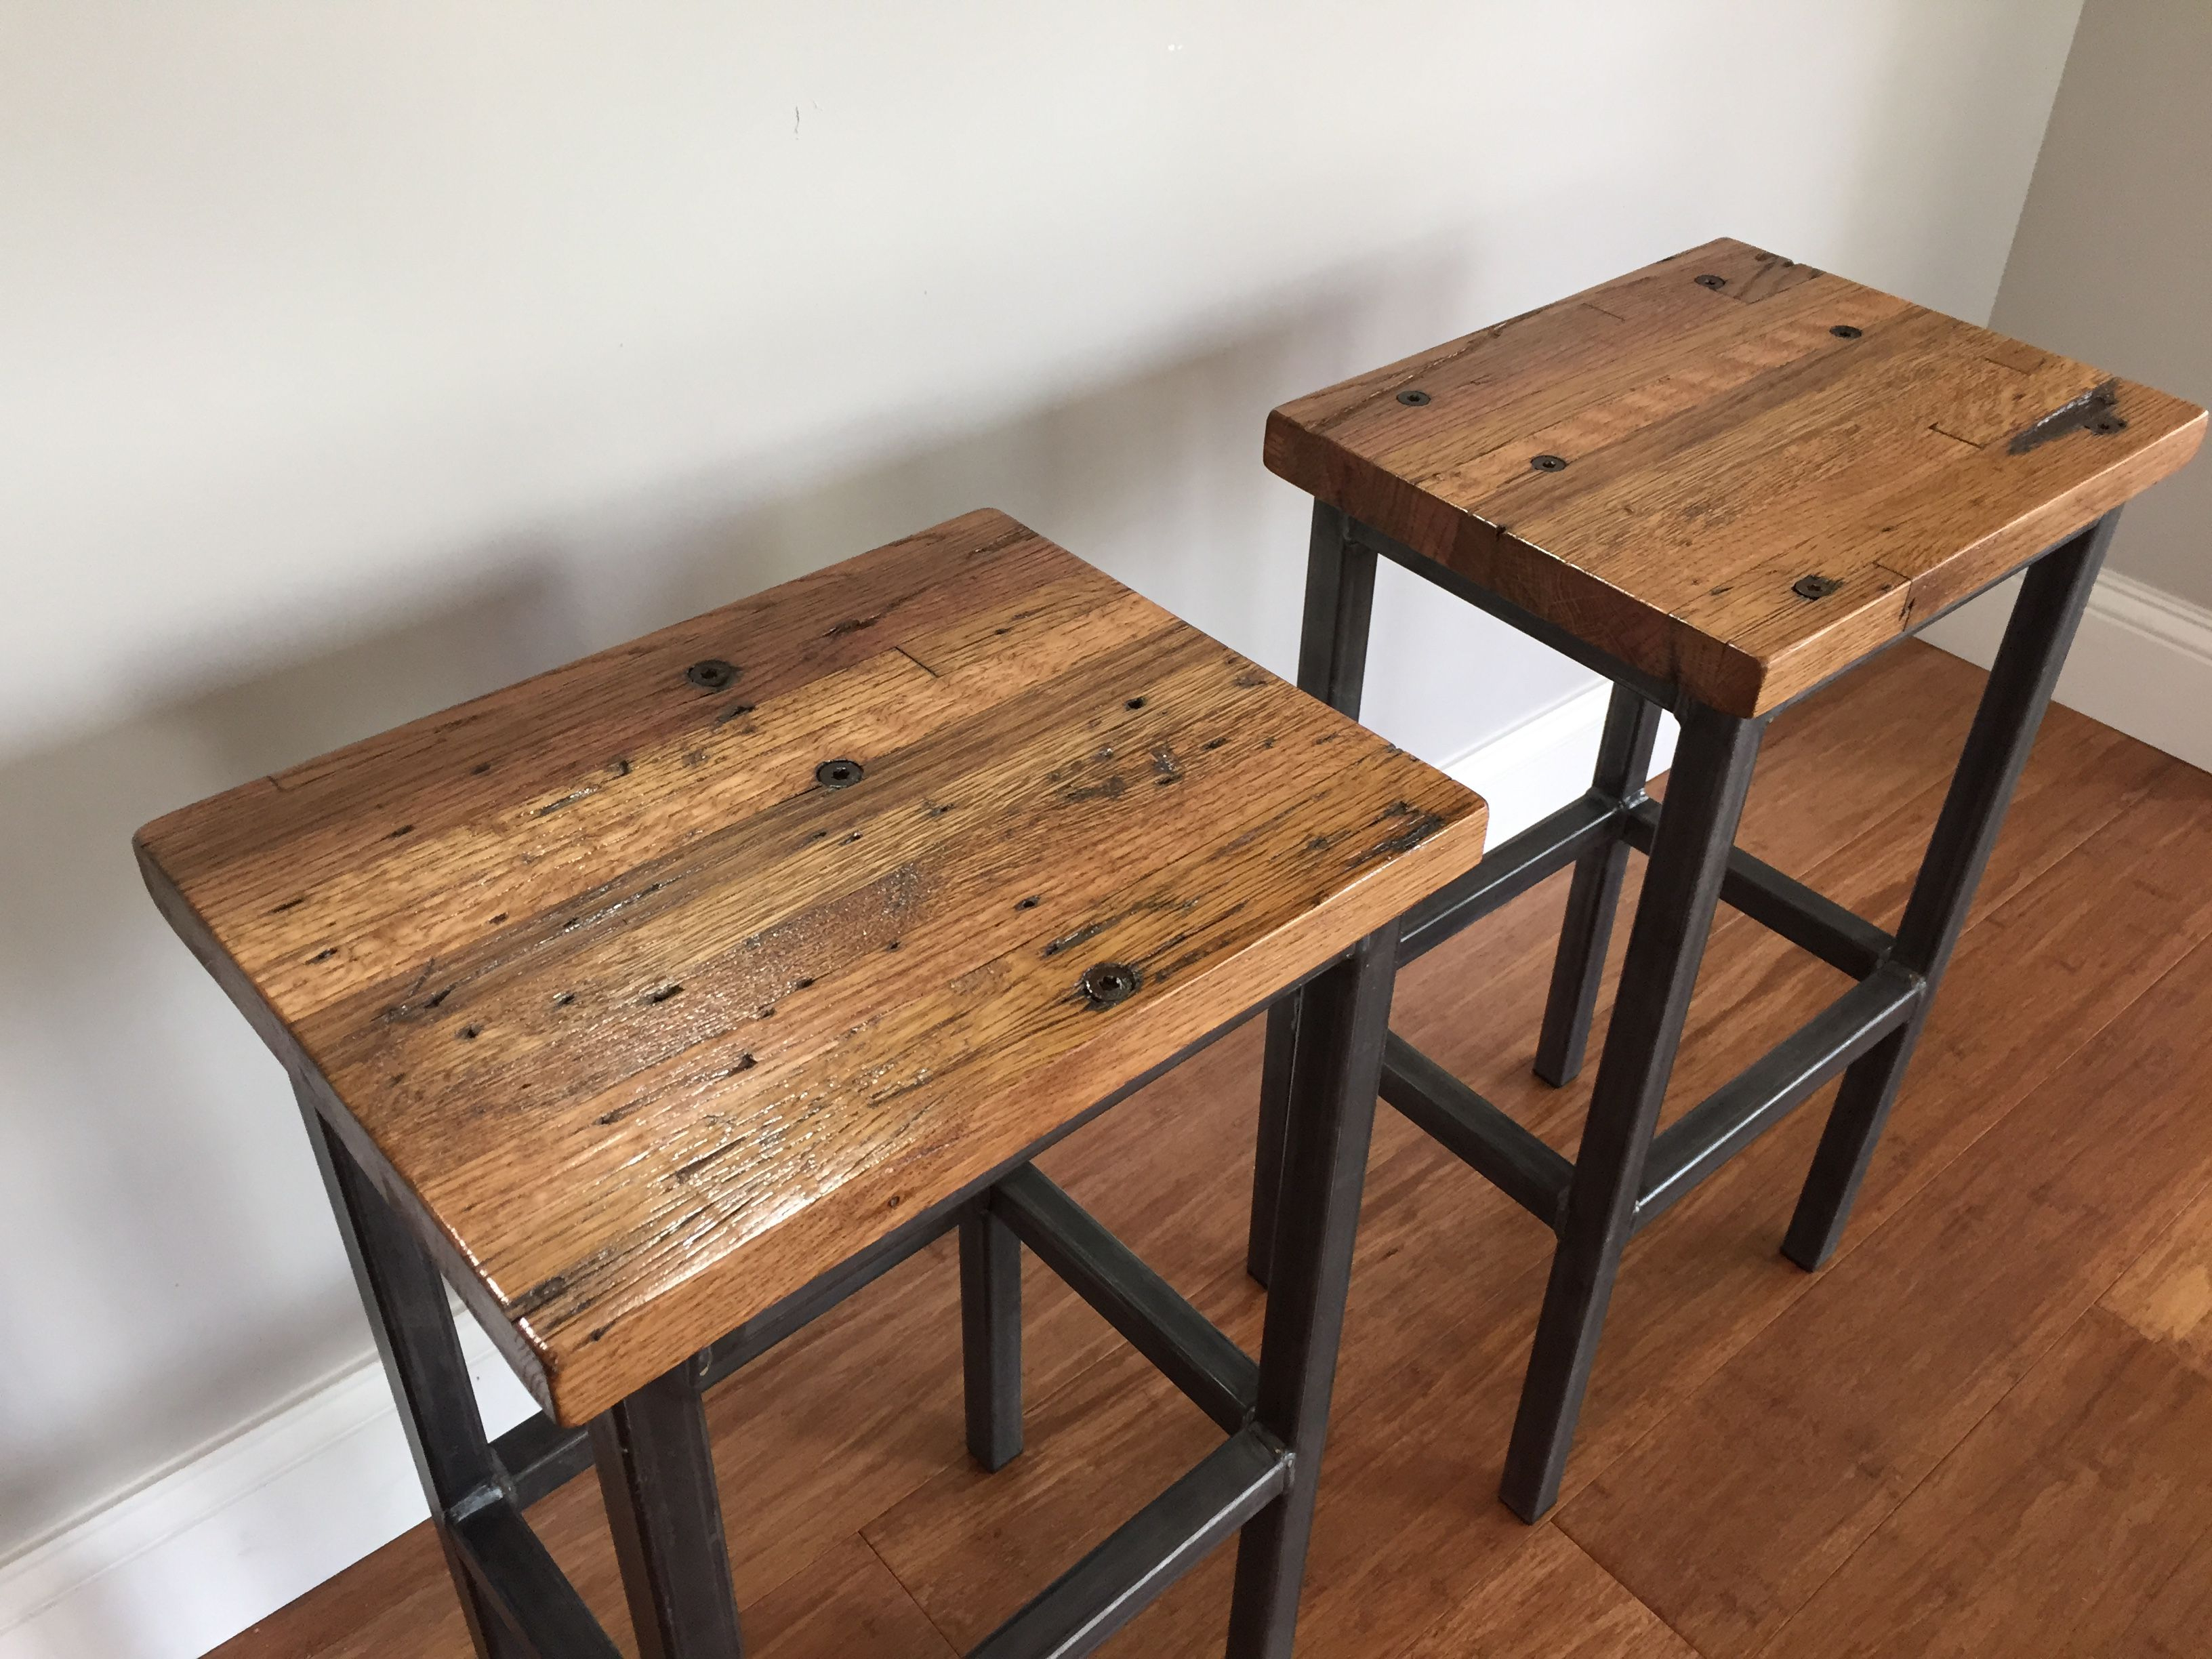 Newest Metal Framed Reclaimed Wood Sideboards Intended For Buy A Hand Crafted Reclaimed Oak Wood Bar Stools W/steel Frames (Gallery 8 of 20)